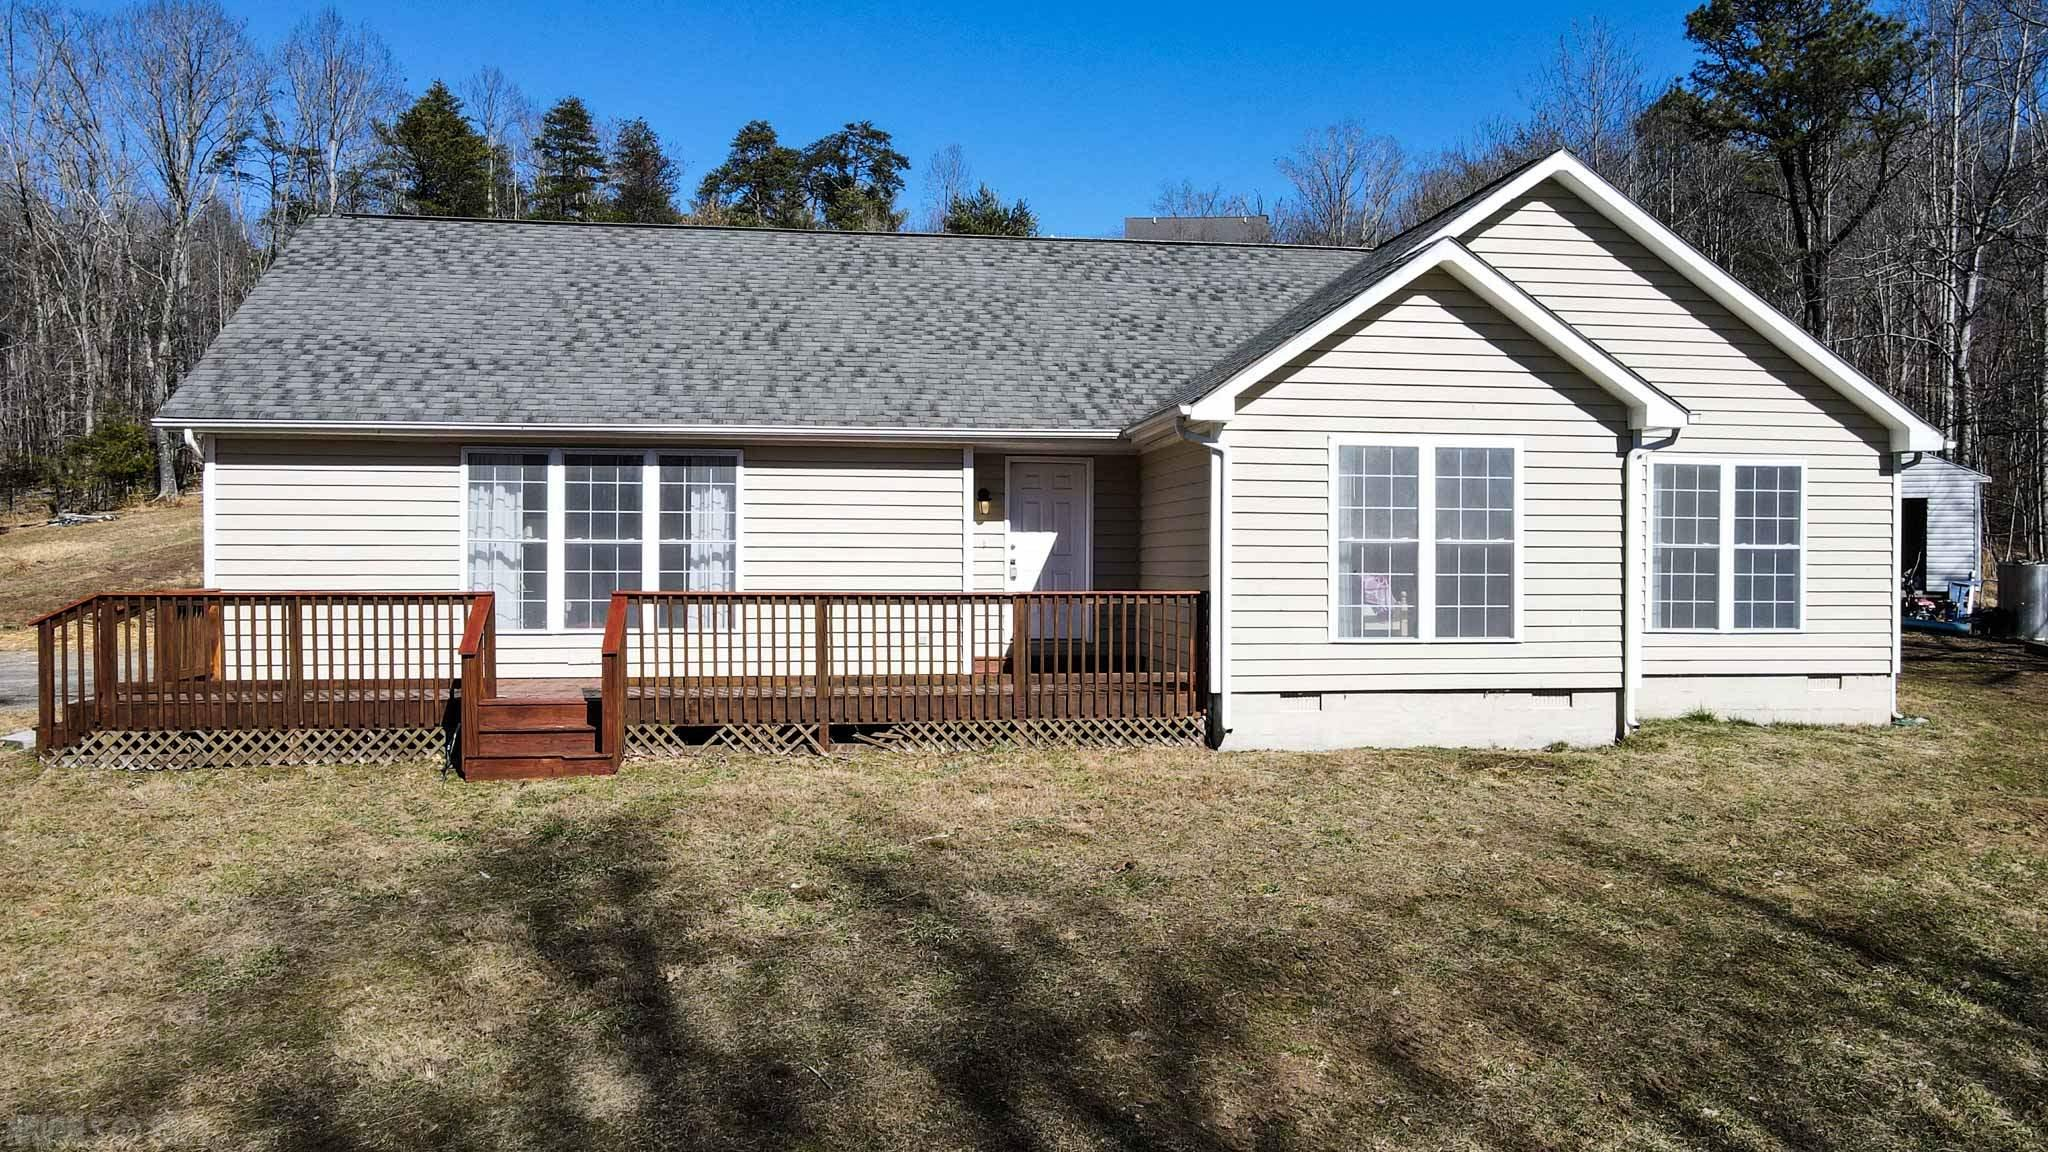 Just 10 country miles from I-81 for this Claytor Lake community. Nestled on 1.43 acres in a cul-de-sac setting for this comfortable living ranch home. The living room has hardwood floors, a gas log fireplace (no propane tank) and tall windows for lots of natural light & seasonal lake views.  The kitchen is open to the dining area with access to the back patio. Spacious kitchen with loads of cabinets & a country sink. The dishwasher is approx 1.5 yrs old.  The laundry room, with newer washer, & half bath are located off the kitchen and side door to outside. The hardwood floors flow from the living room to the 3 bedrooms.  The master suite includes a large private bath w/ garden tub, step in shower & walk in closet plus a closet in the bedroom.  A bonus room off the master could be an office, nursery, sitting room - you name it!  Check out the common area with your own boat slip.  Bring your water toys and get ready for summers at the lake.  Heat pump inside & outdoor units replaced 2014